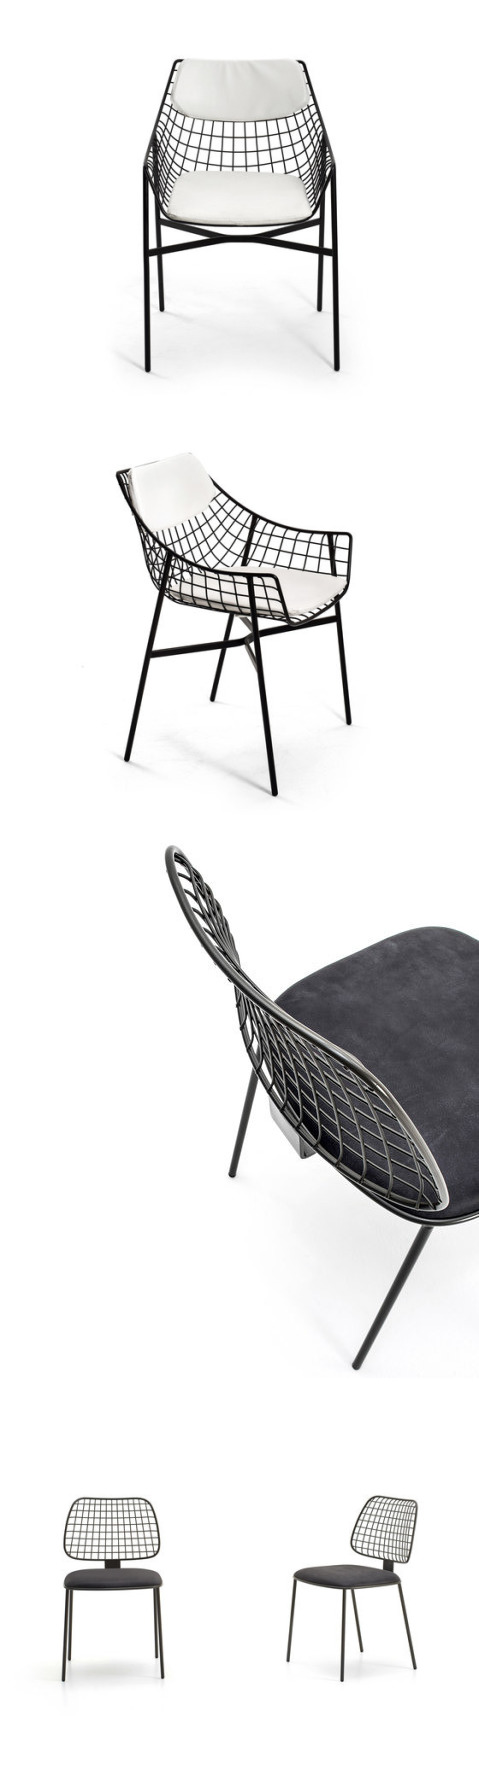 Christophe Pillet Summerset Seating Collection | II. Mouvements ...